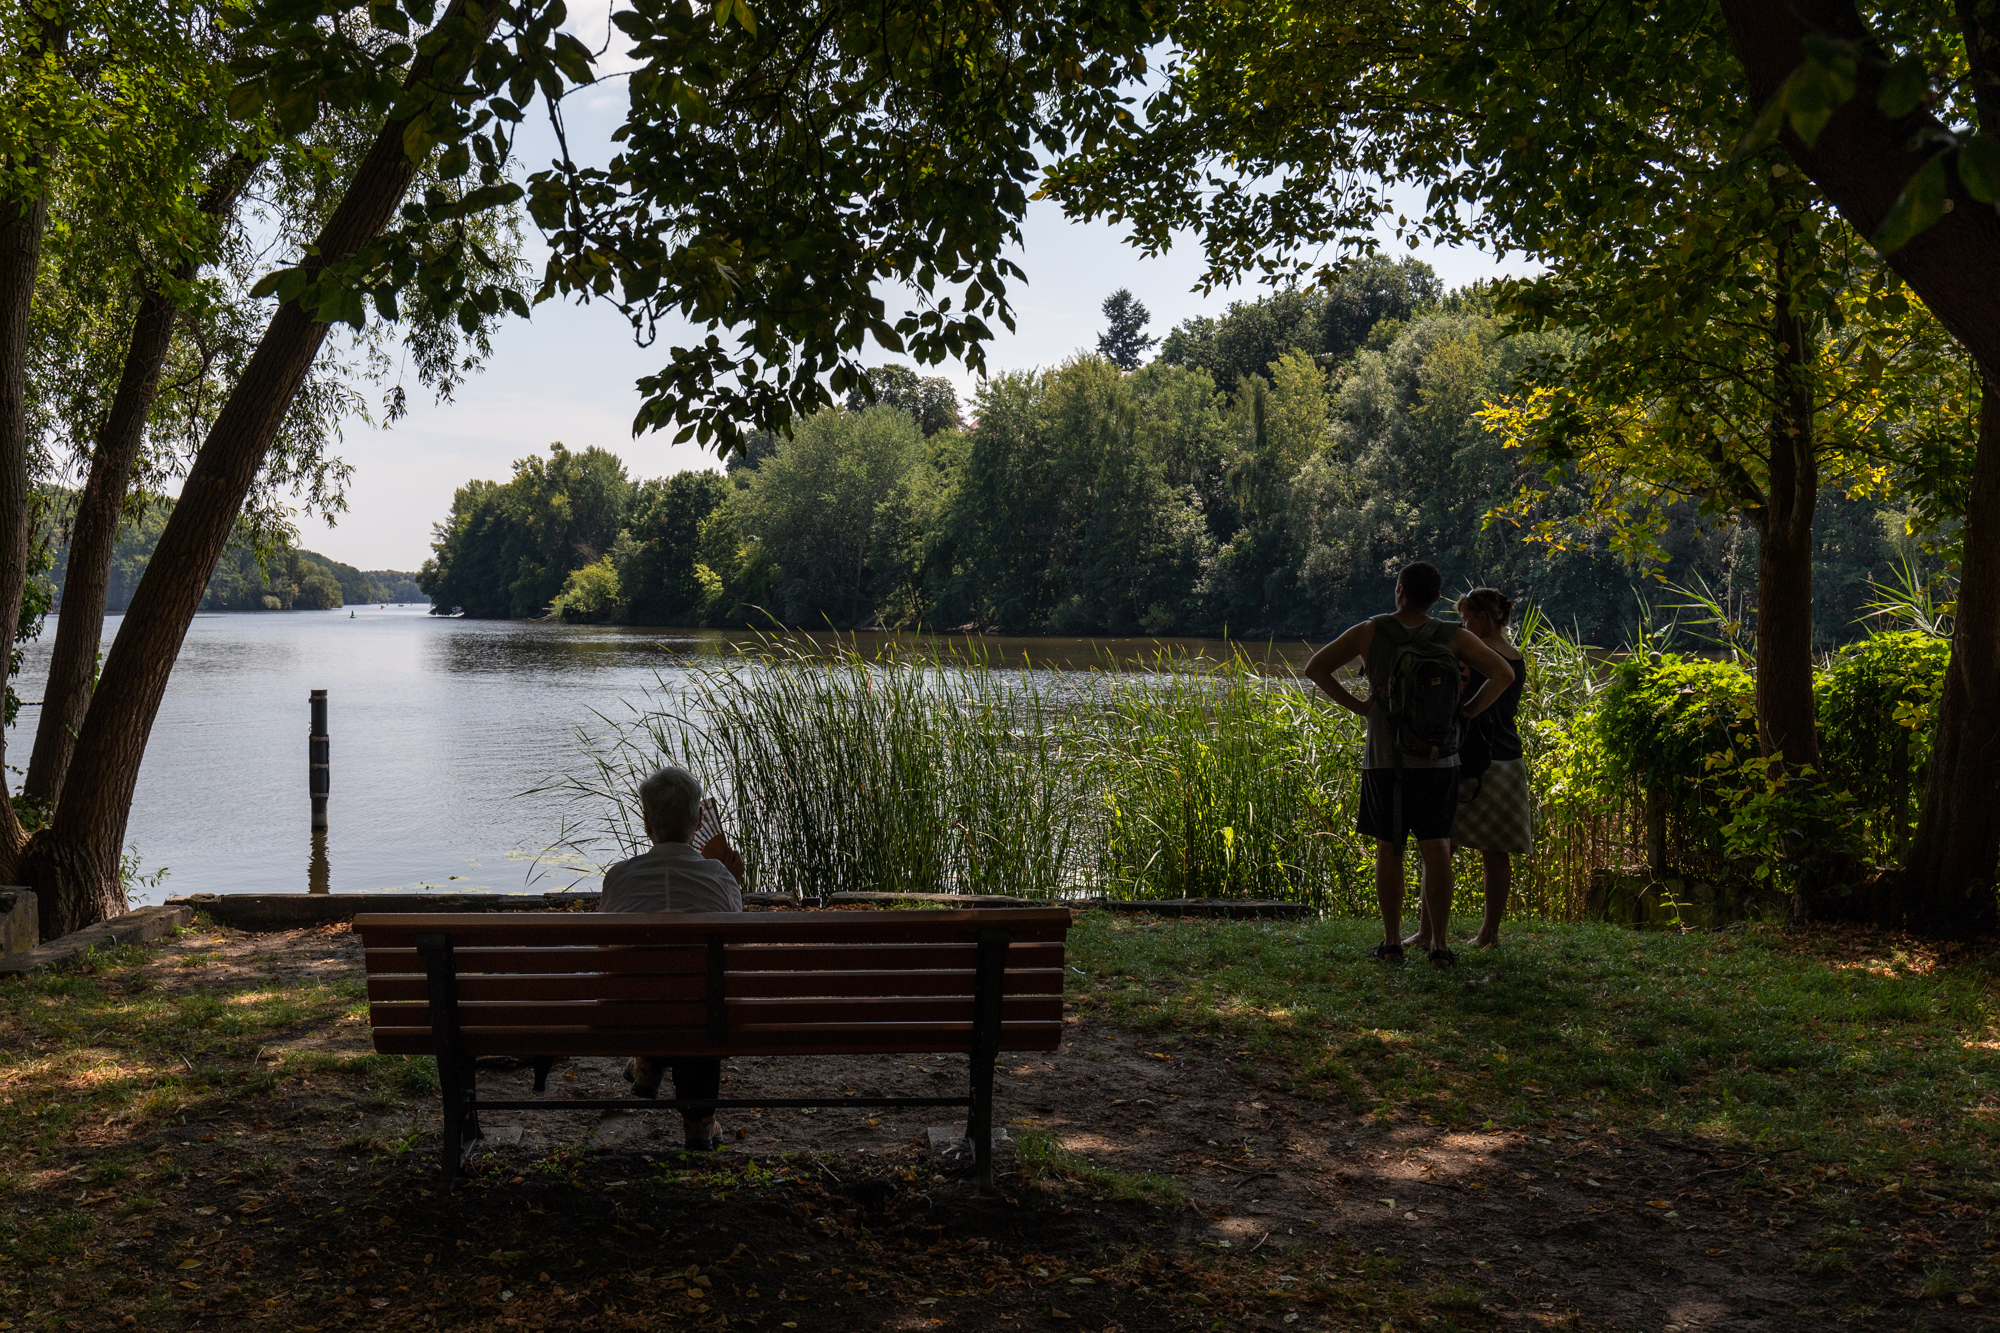 Griebnitzsee from Klein Glienicke - a former East German enclave separated from West Berlin by the Berlin Wall and only accessible with special permission